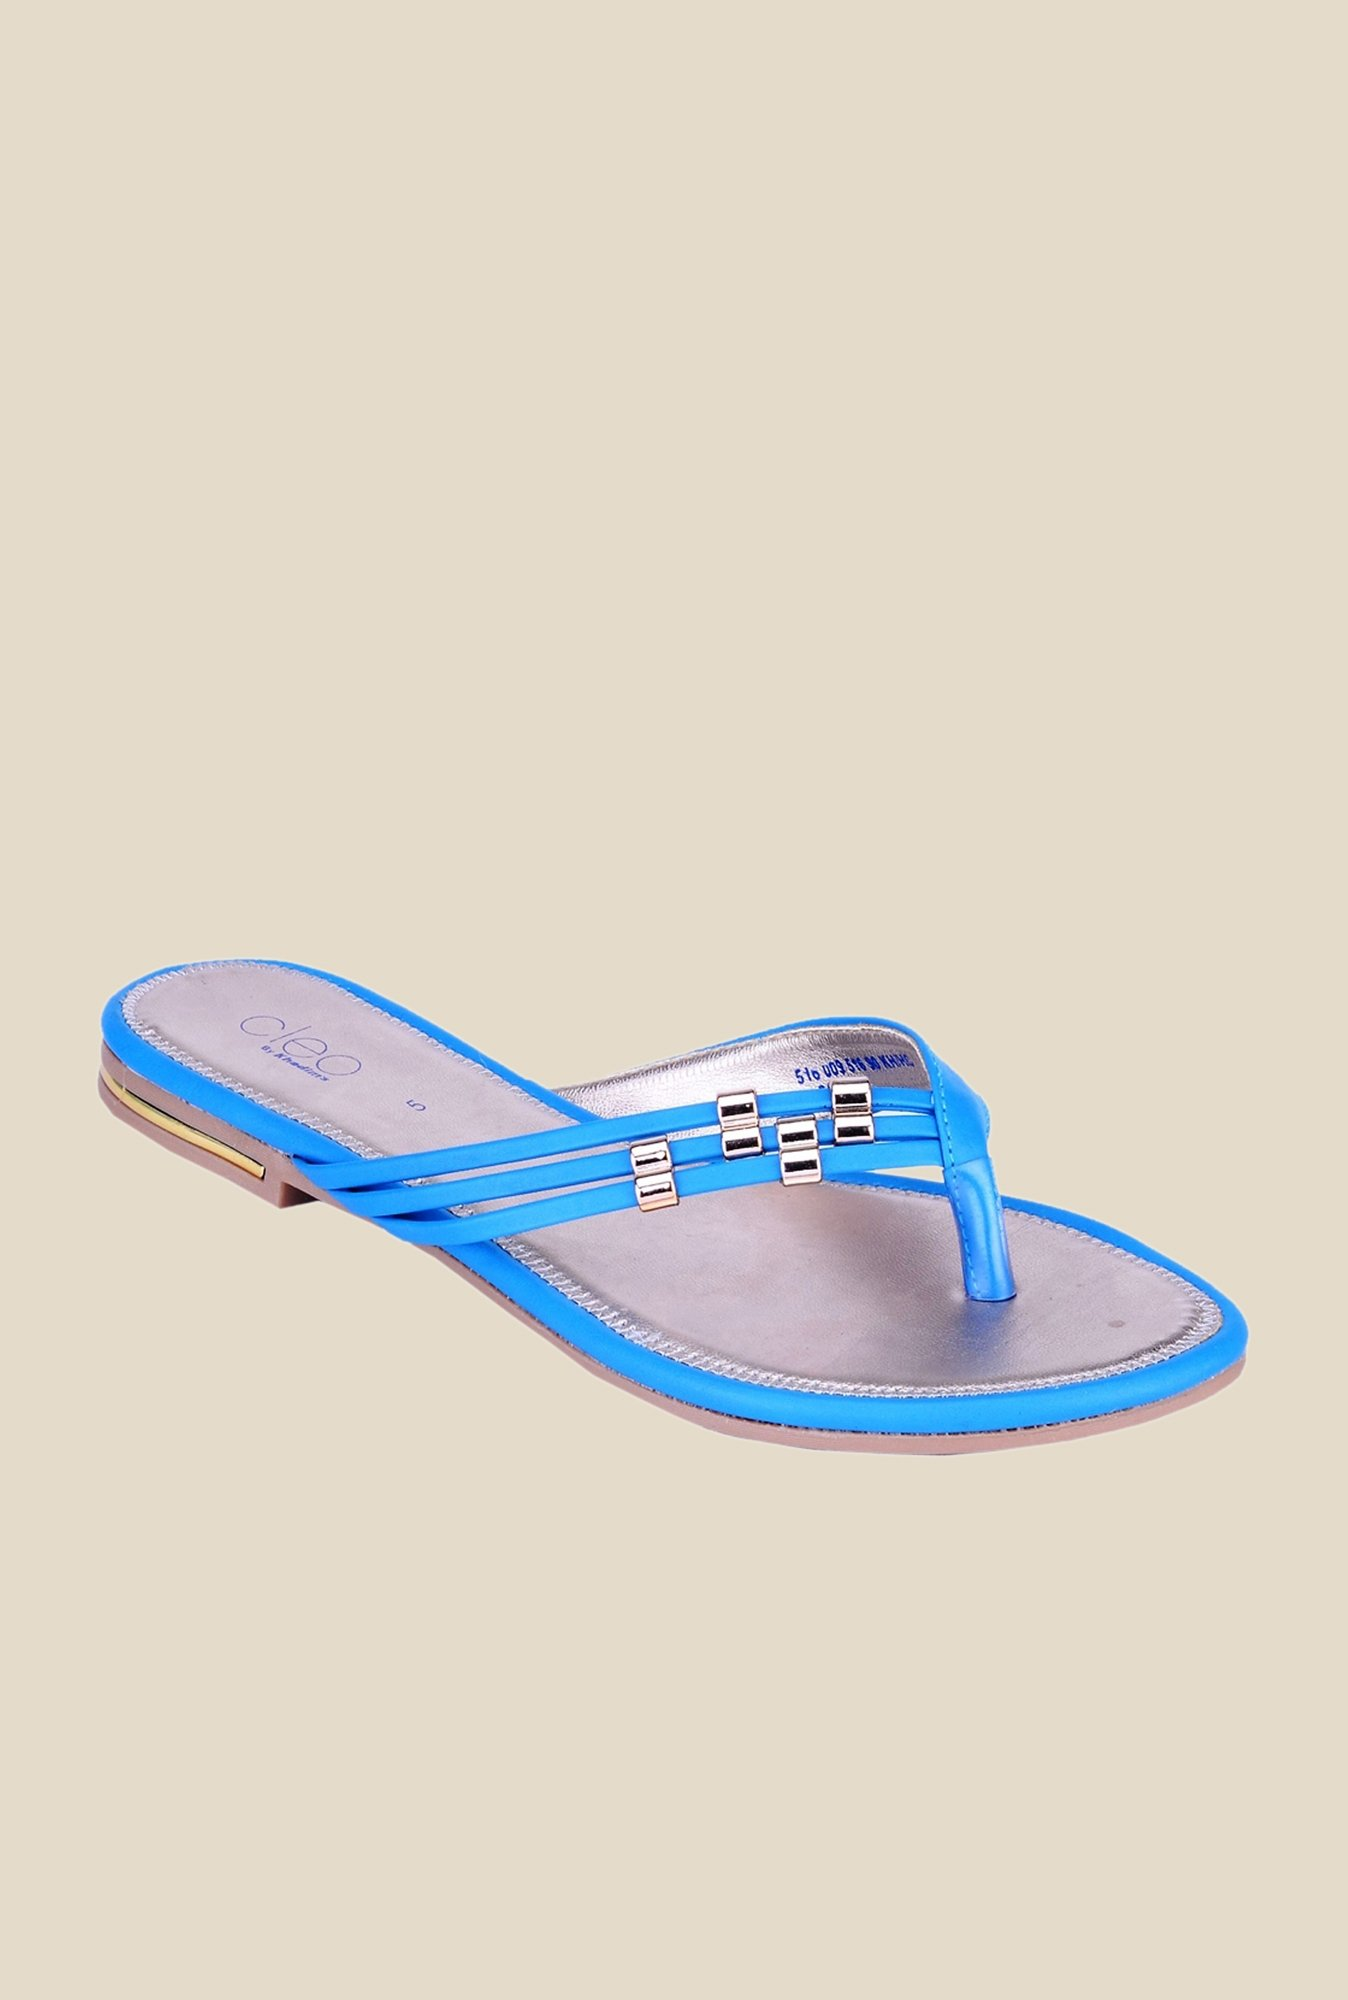 Khadim's Cleo Blue & Gold Thong Sandals